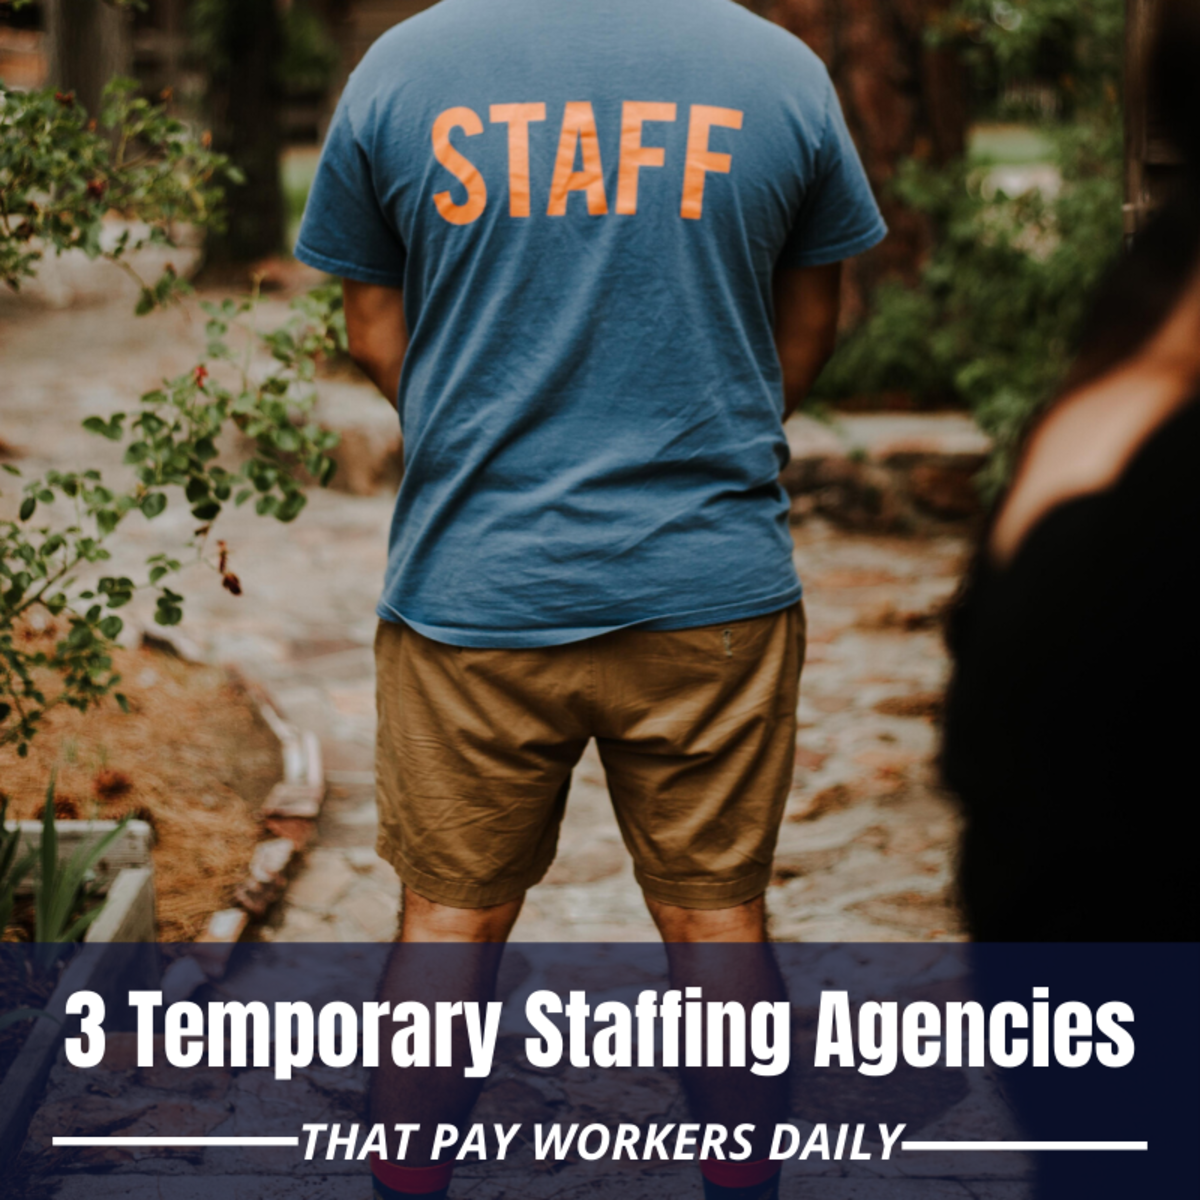 3 Temporary Staffing Agencies That Pay Daily